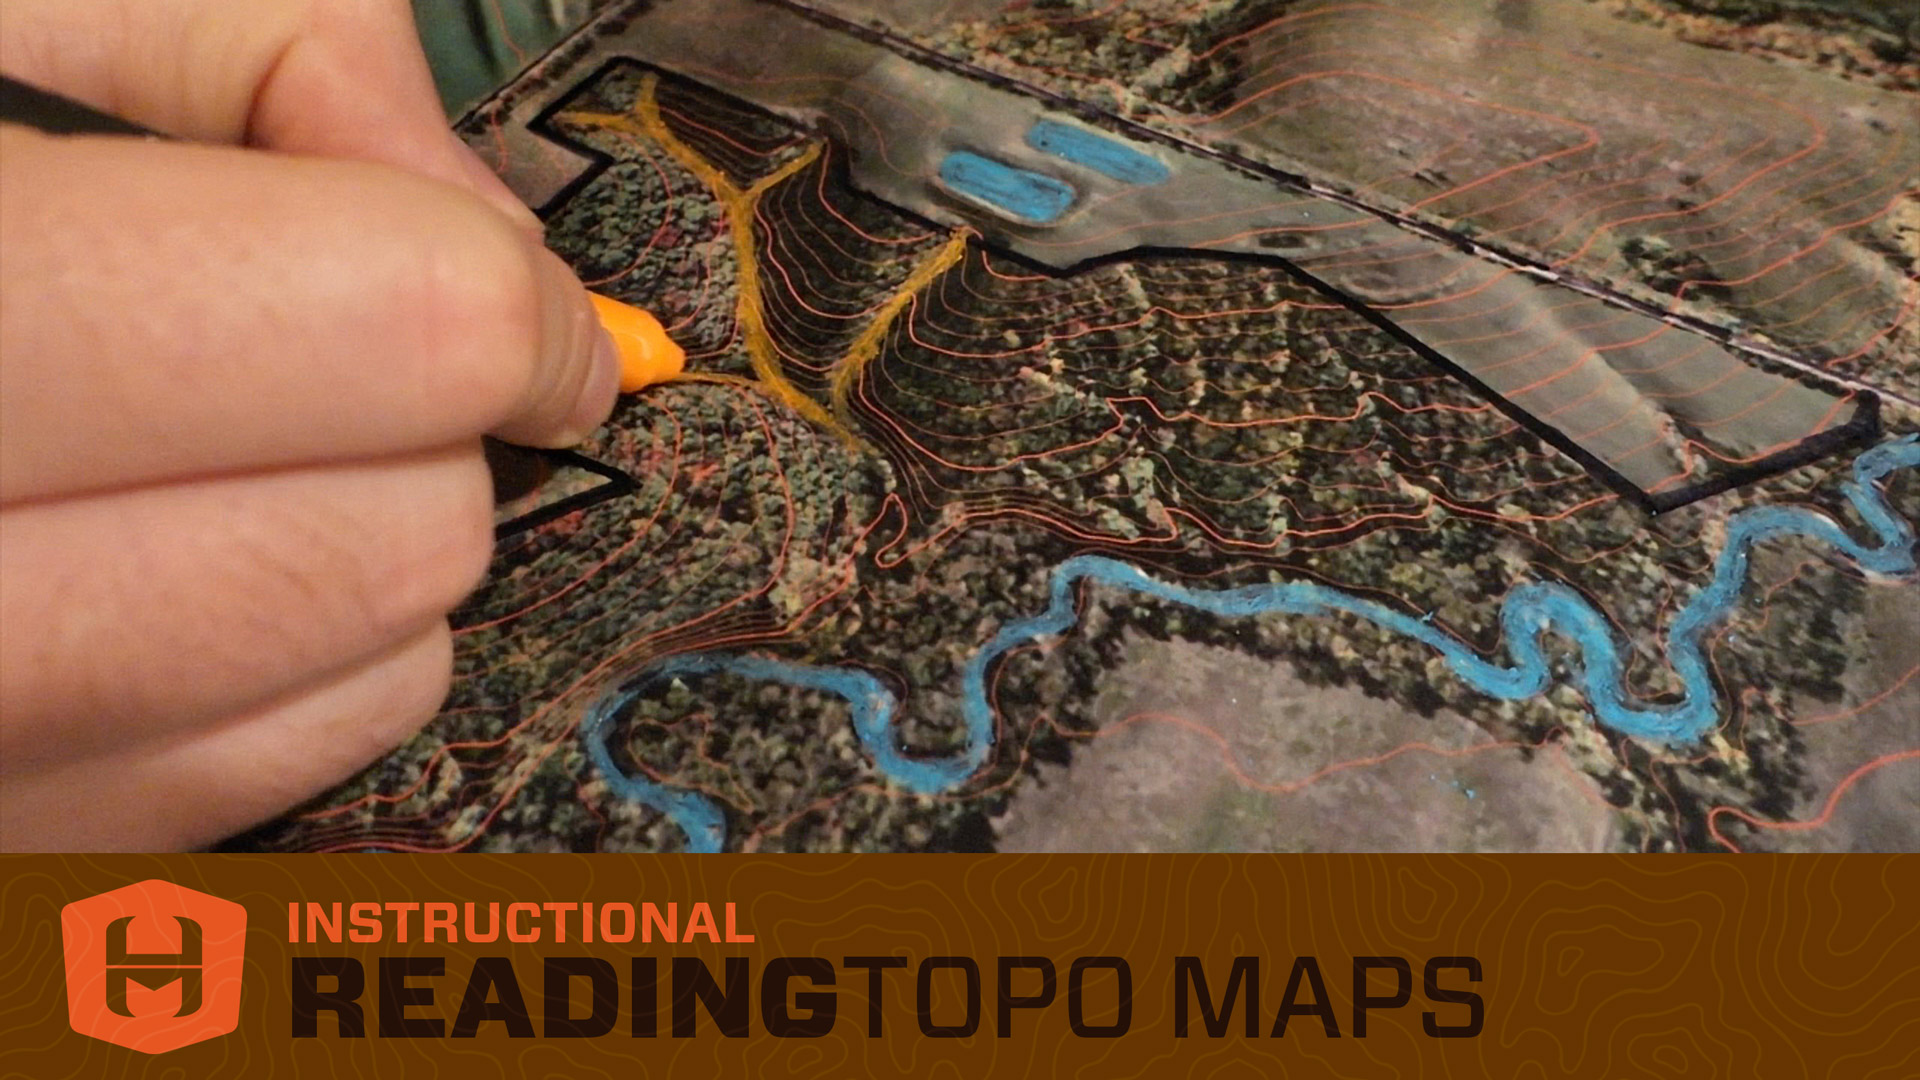 Reading Topo Maps